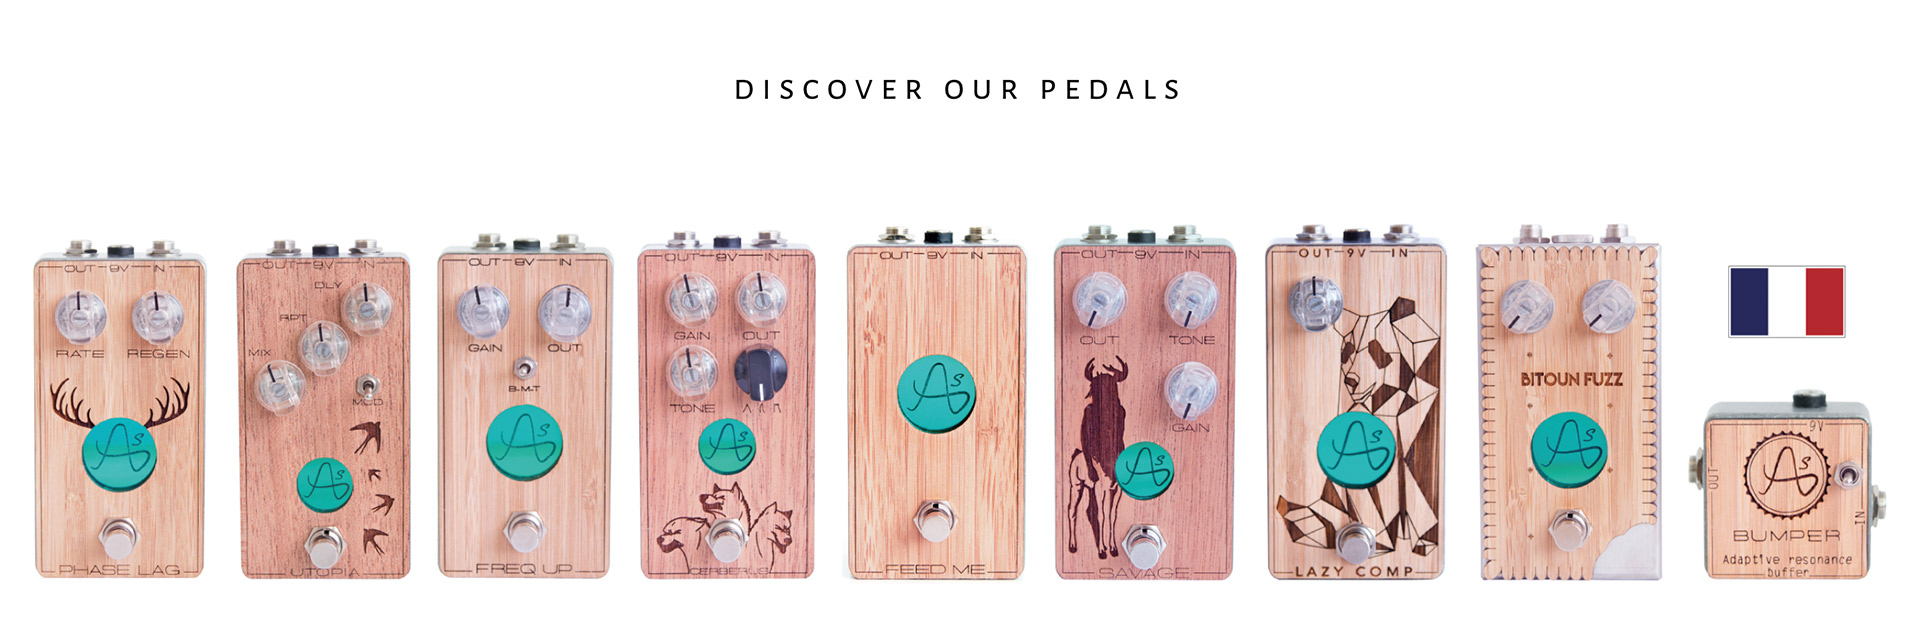 WHERE TO BUY ANASOUNDS PEDALS AUSTRALIA